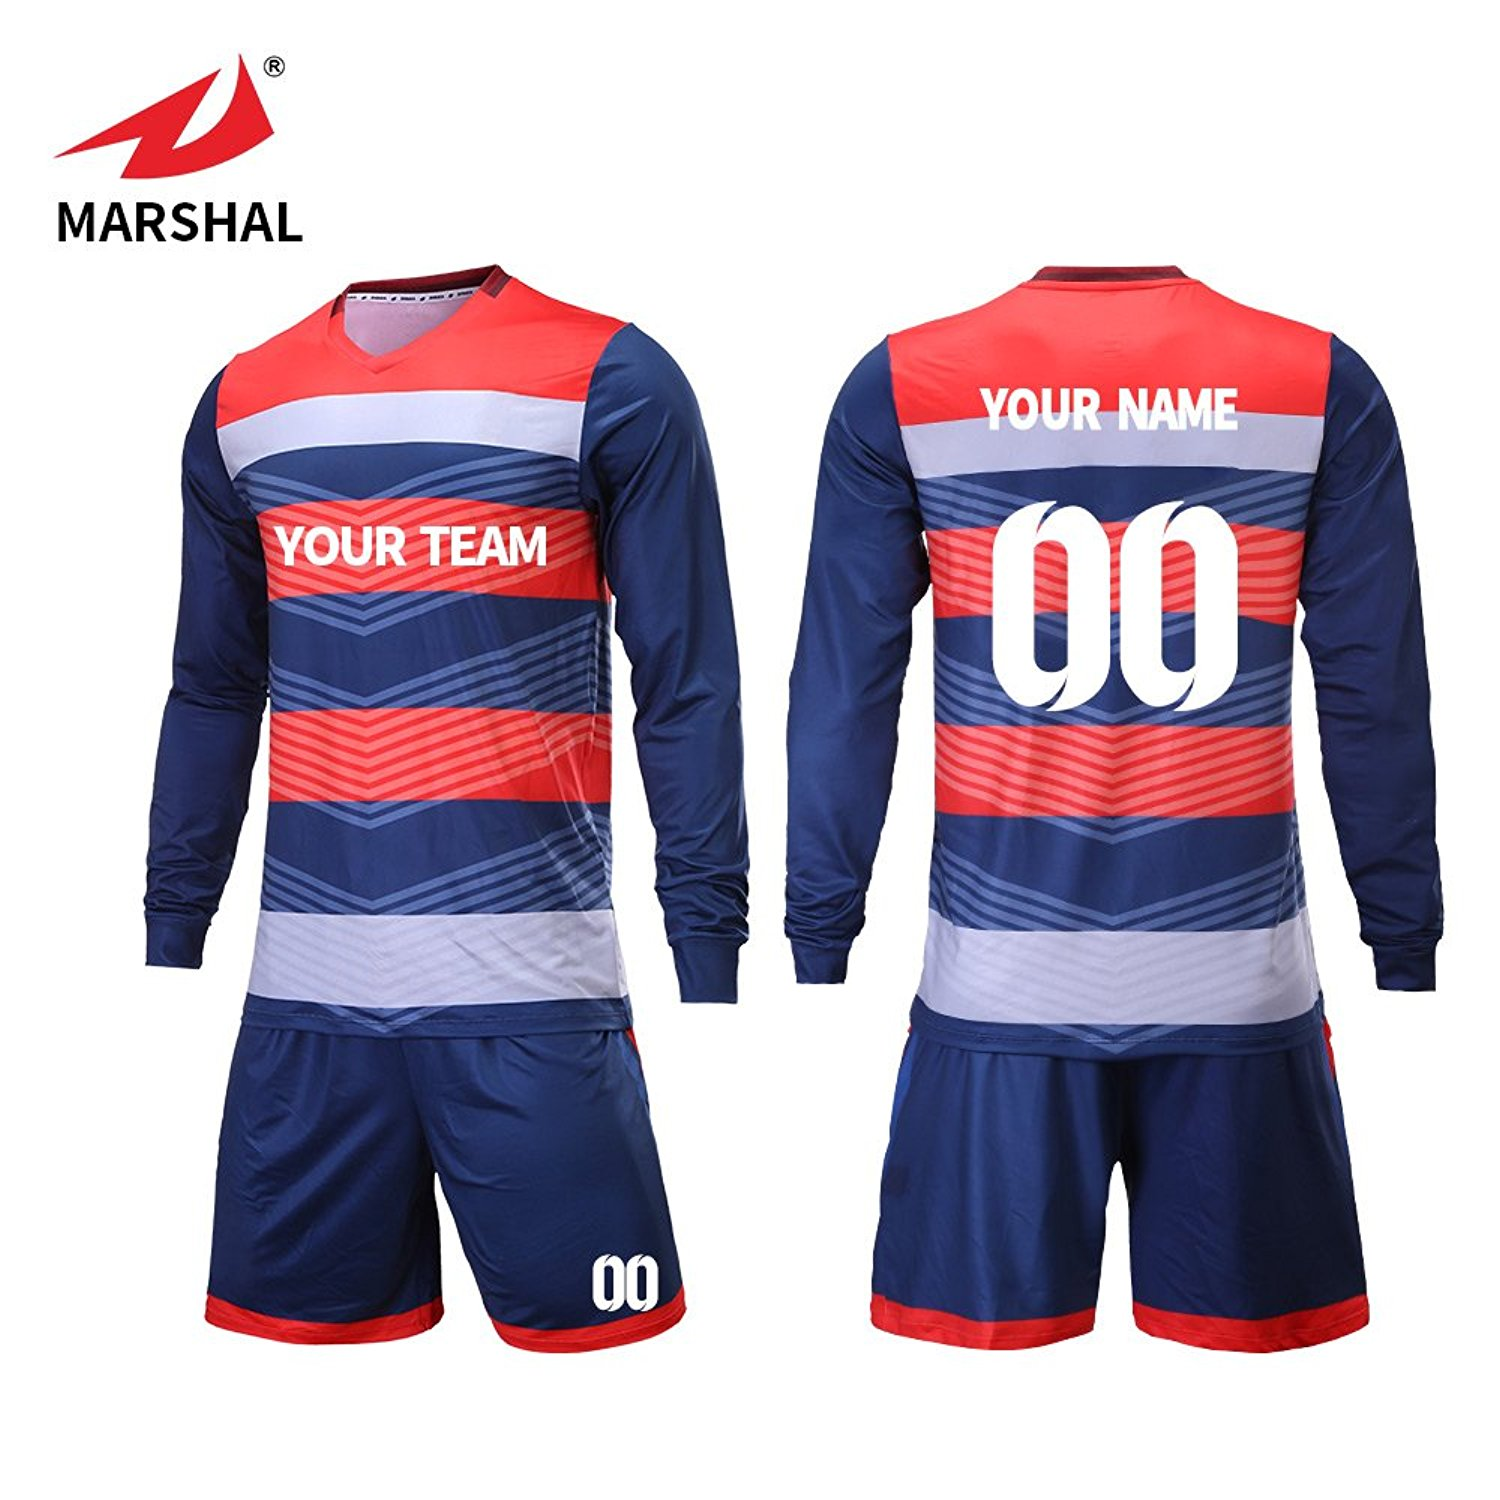 a5c0e35601f Get Quotations · Marshal Jersey Long Sleeves Custom Soccer Jersey Sets  Soccer Team Uniforms For Men With Numbers